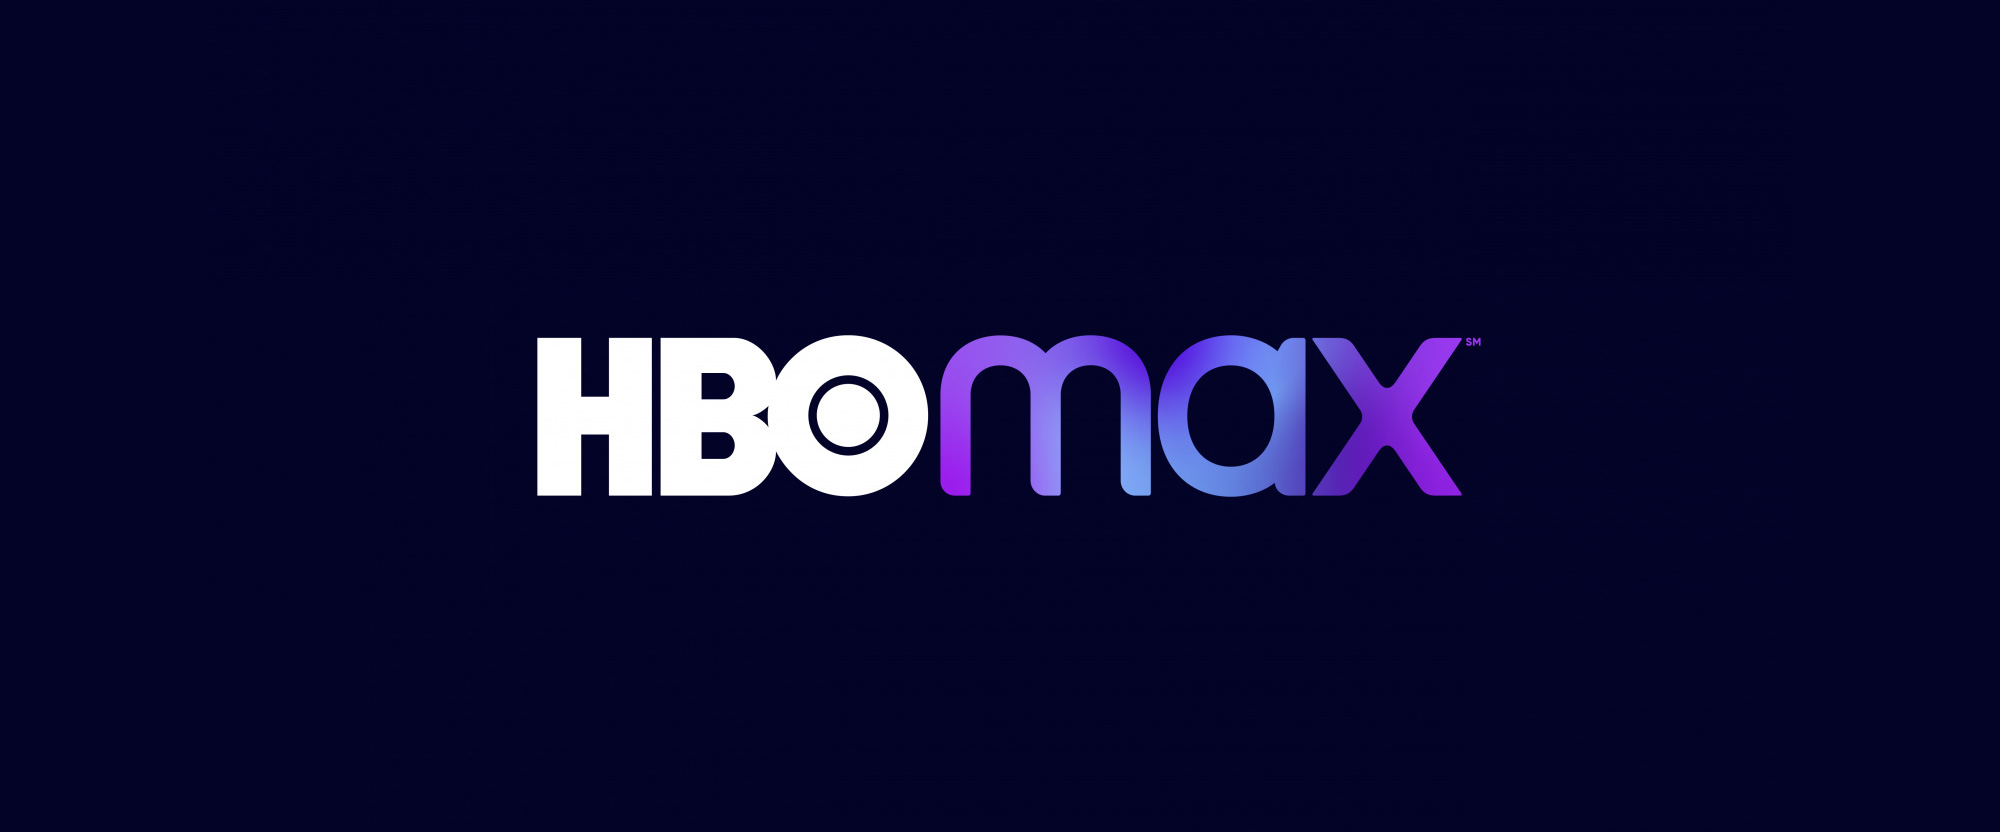 Follow-up: New Logo for HBO Max by Trollbäck+Company